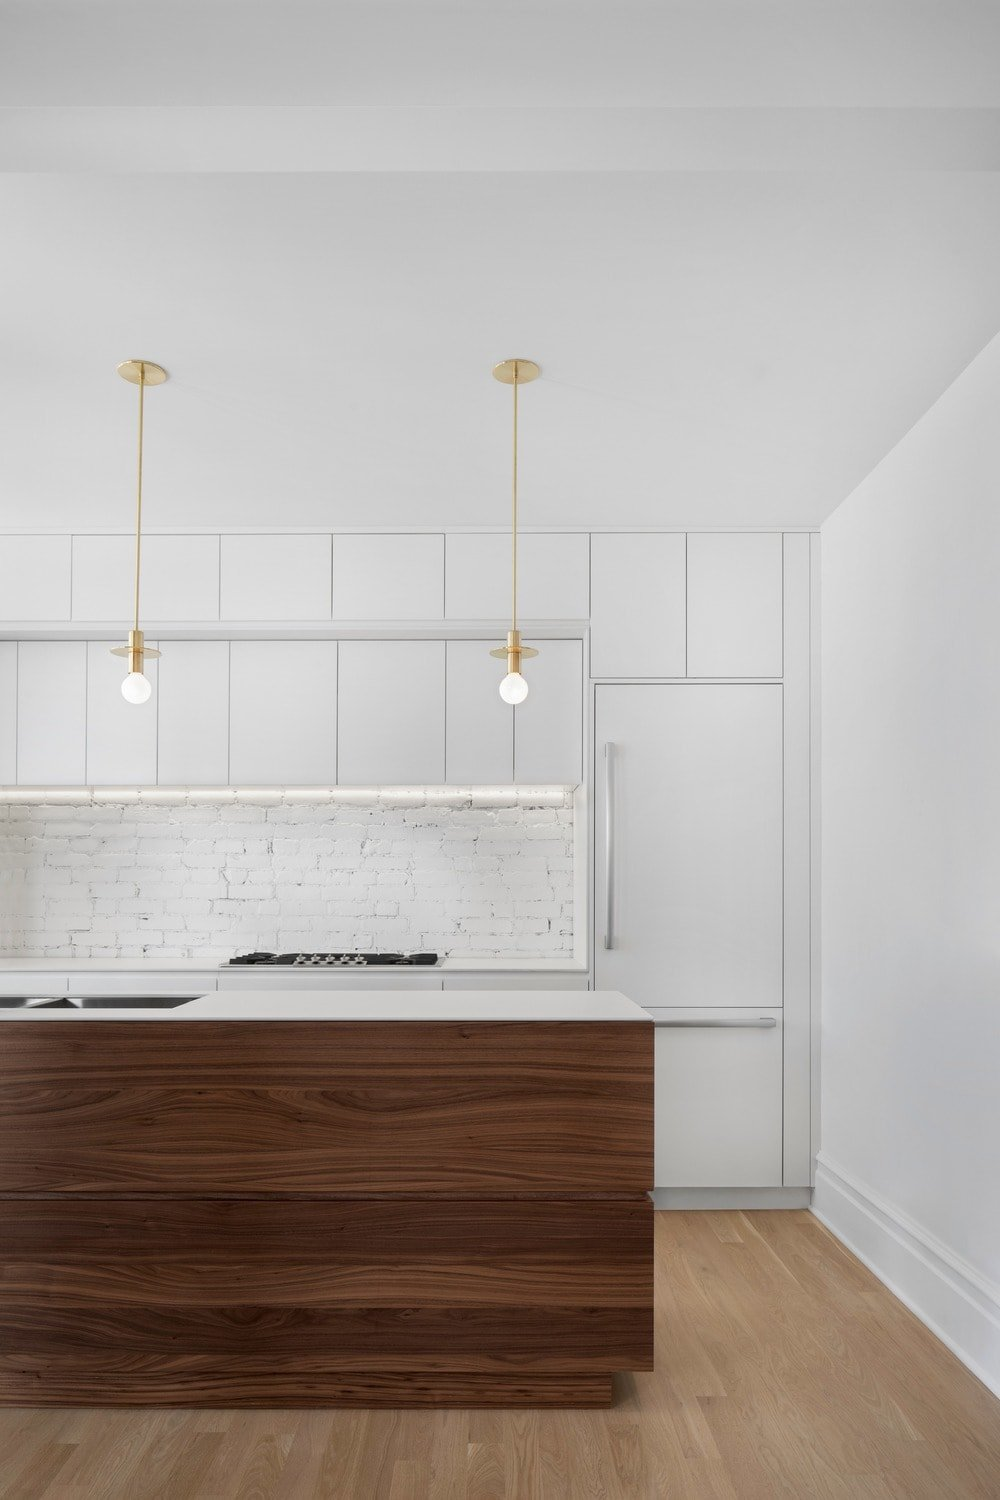 This other look at the kitchen shows the modern cabinetry lining the wall across from the kitchen island, This is paired with a white brick backsplash.